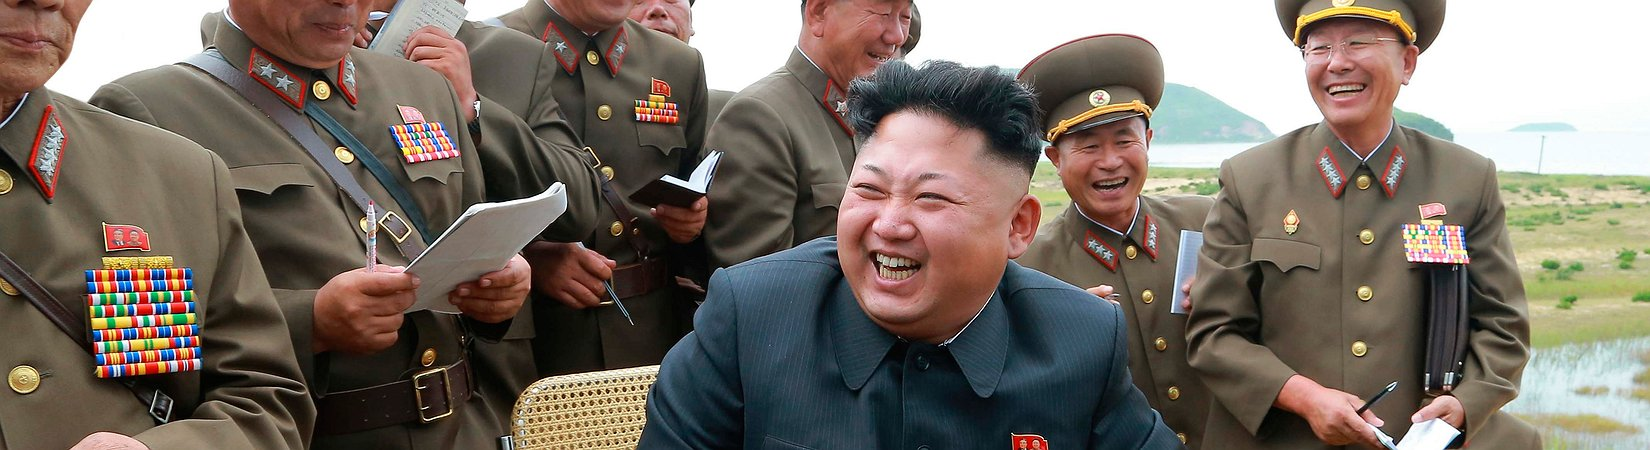 Report: North Korea is after cryptocurrencies to avoid sanctions